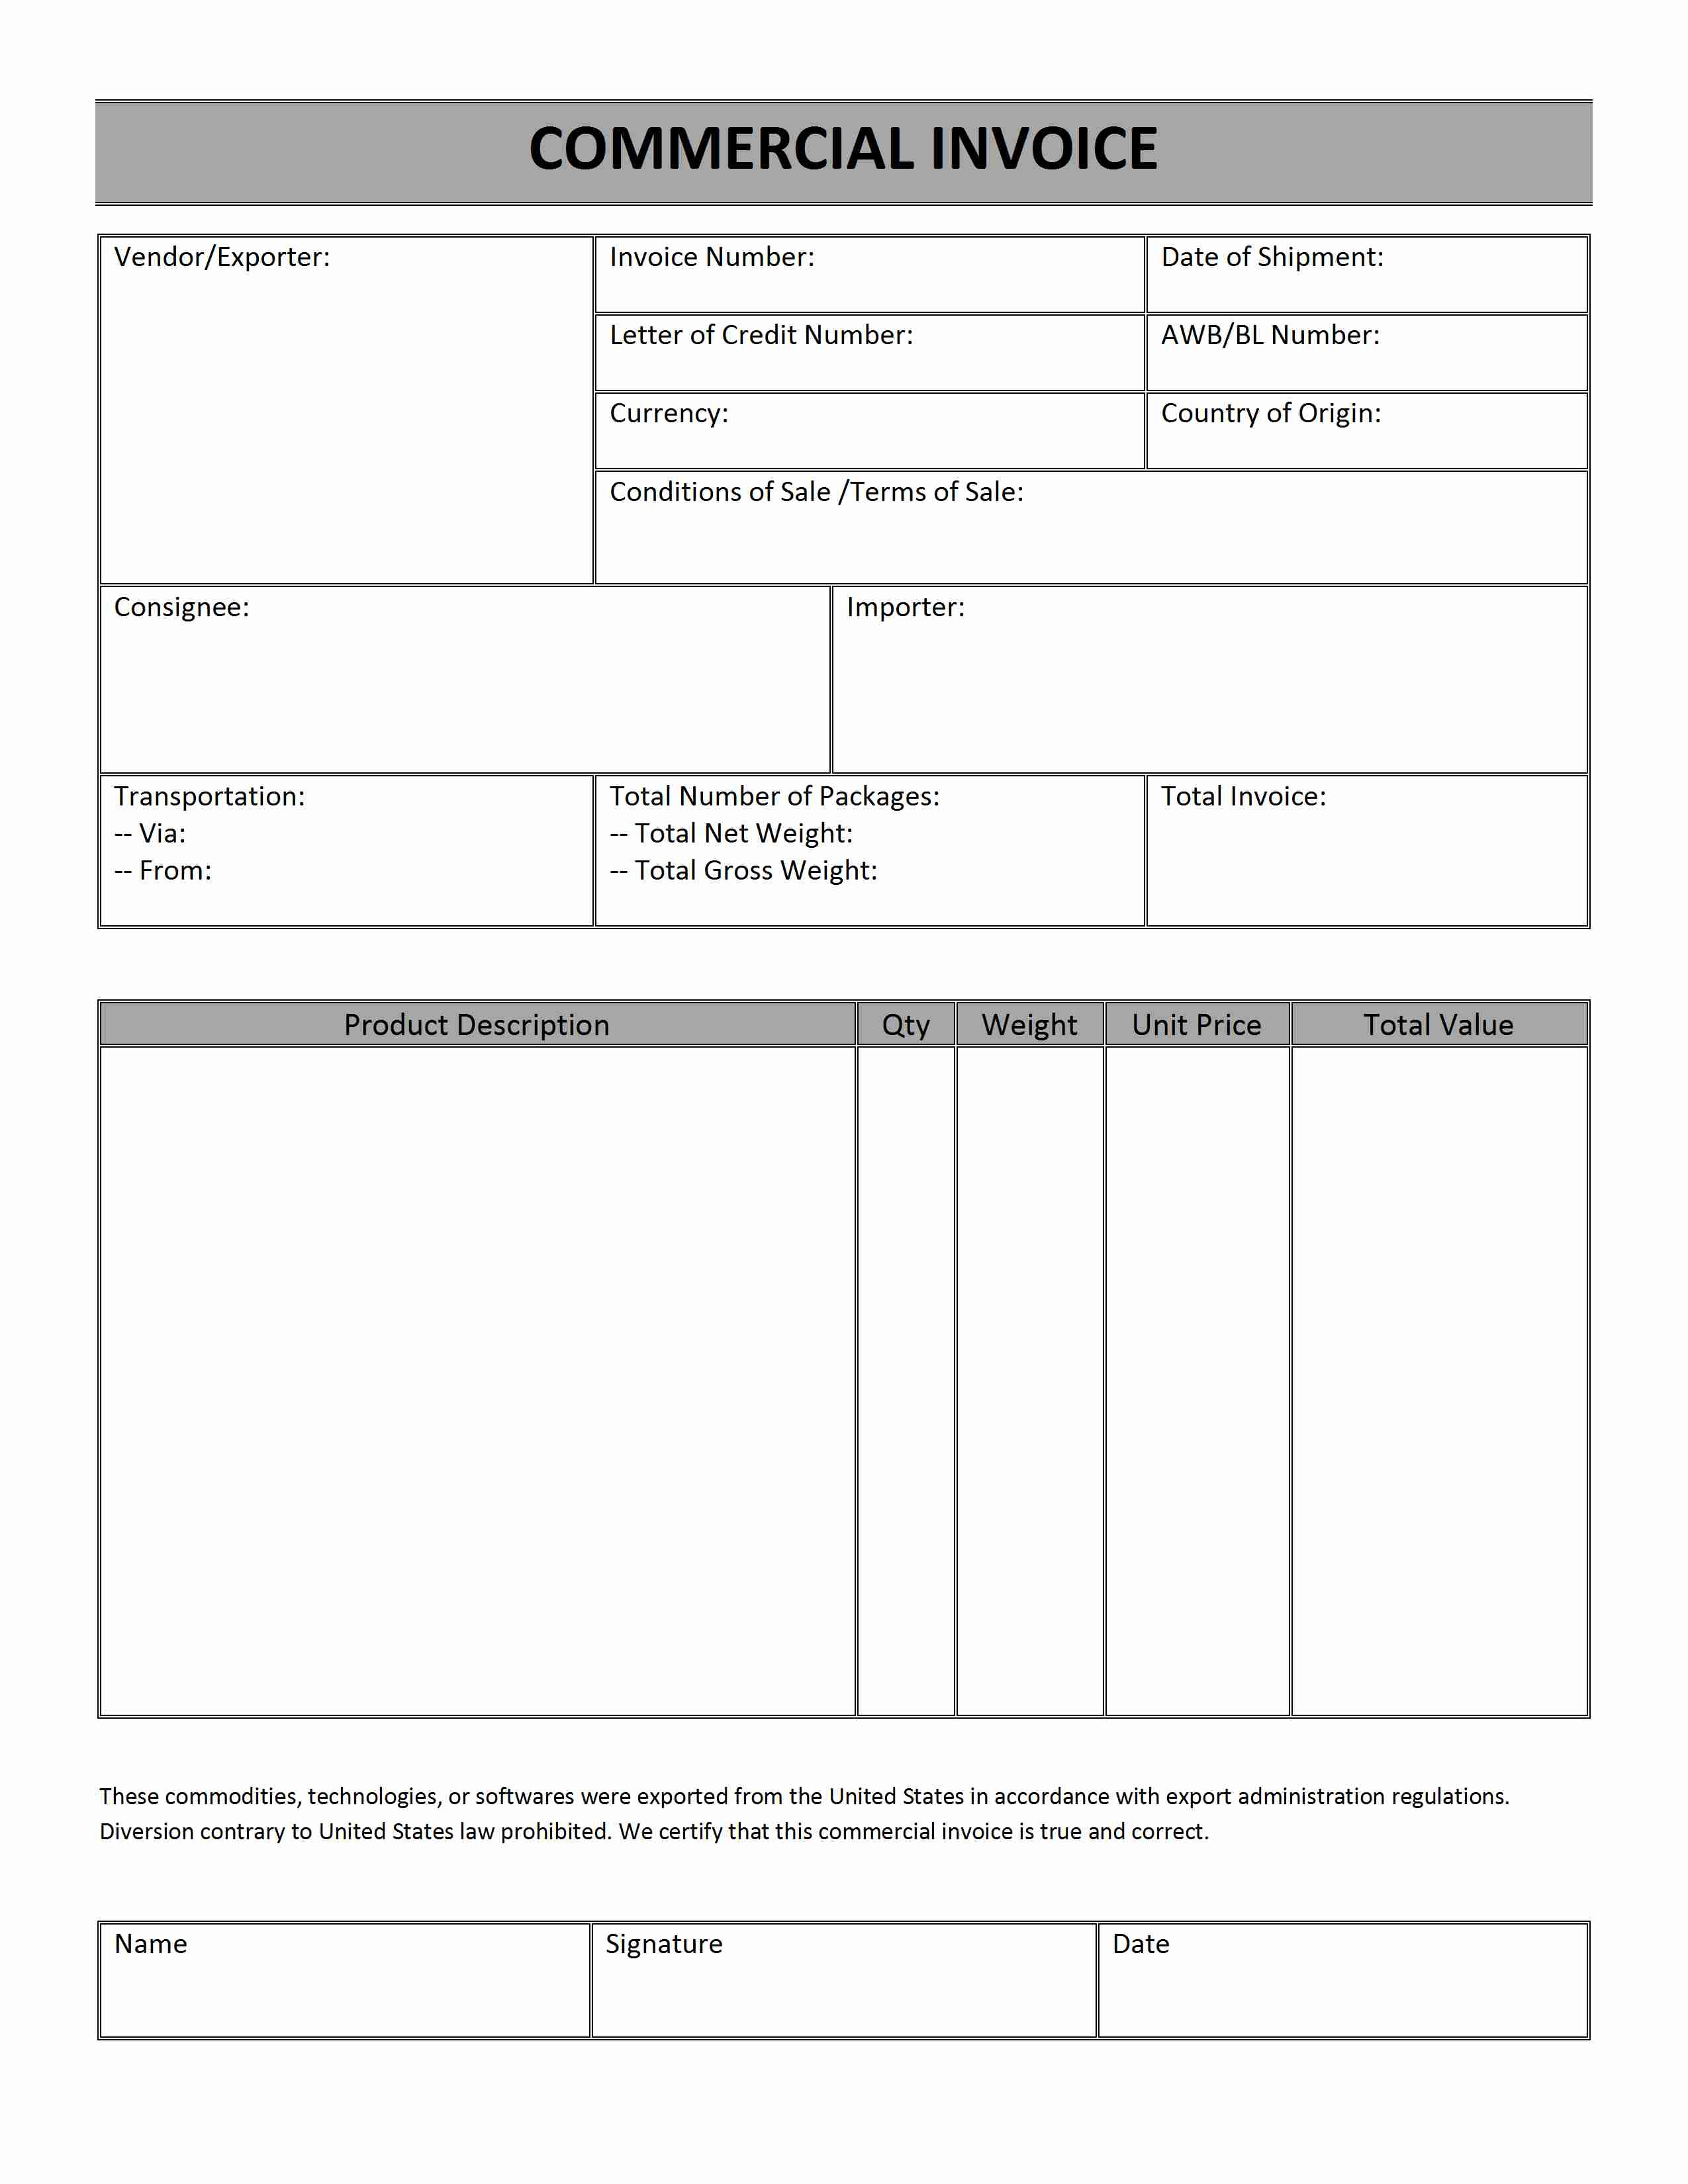 Breakupus  Splendid Printable Sales Invoice Simple Invoice Form Free Invoice  With Luxury Printable Receipt Free  Free Printable Raffle Tickets  Receipt   Printable With Cool Irs Constructive Receipt Also Apple Pie Receipt In Addition Church Donation Receipt And Gas Receipt Template As Well As Miscellaneous Receipts Act Additionally Return Policy Without Receipt From Happytomco With Breakupus  Luxury Printable Sales Invoice Simple Invoice Form Free Invoice  With Cool Printable Receipt Free  Free Printable Raffle Tickets  Receipt   Printable And Splendid Irs Constructive Receipt Also Apple Pie Receipt In Addition Church Donation Receipt From Happytomco